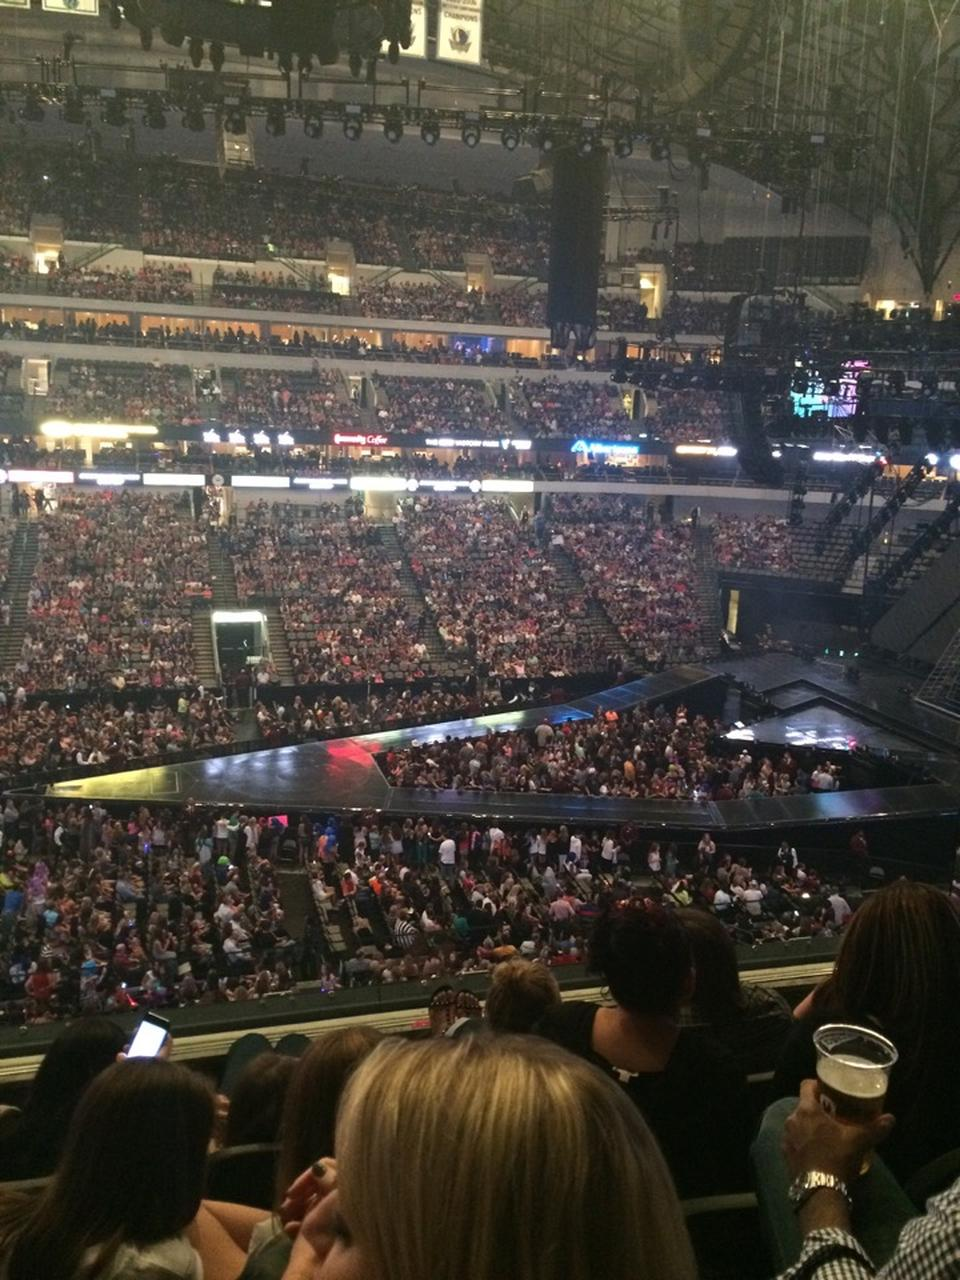 American Airlines Center Section 210 Concert Seating